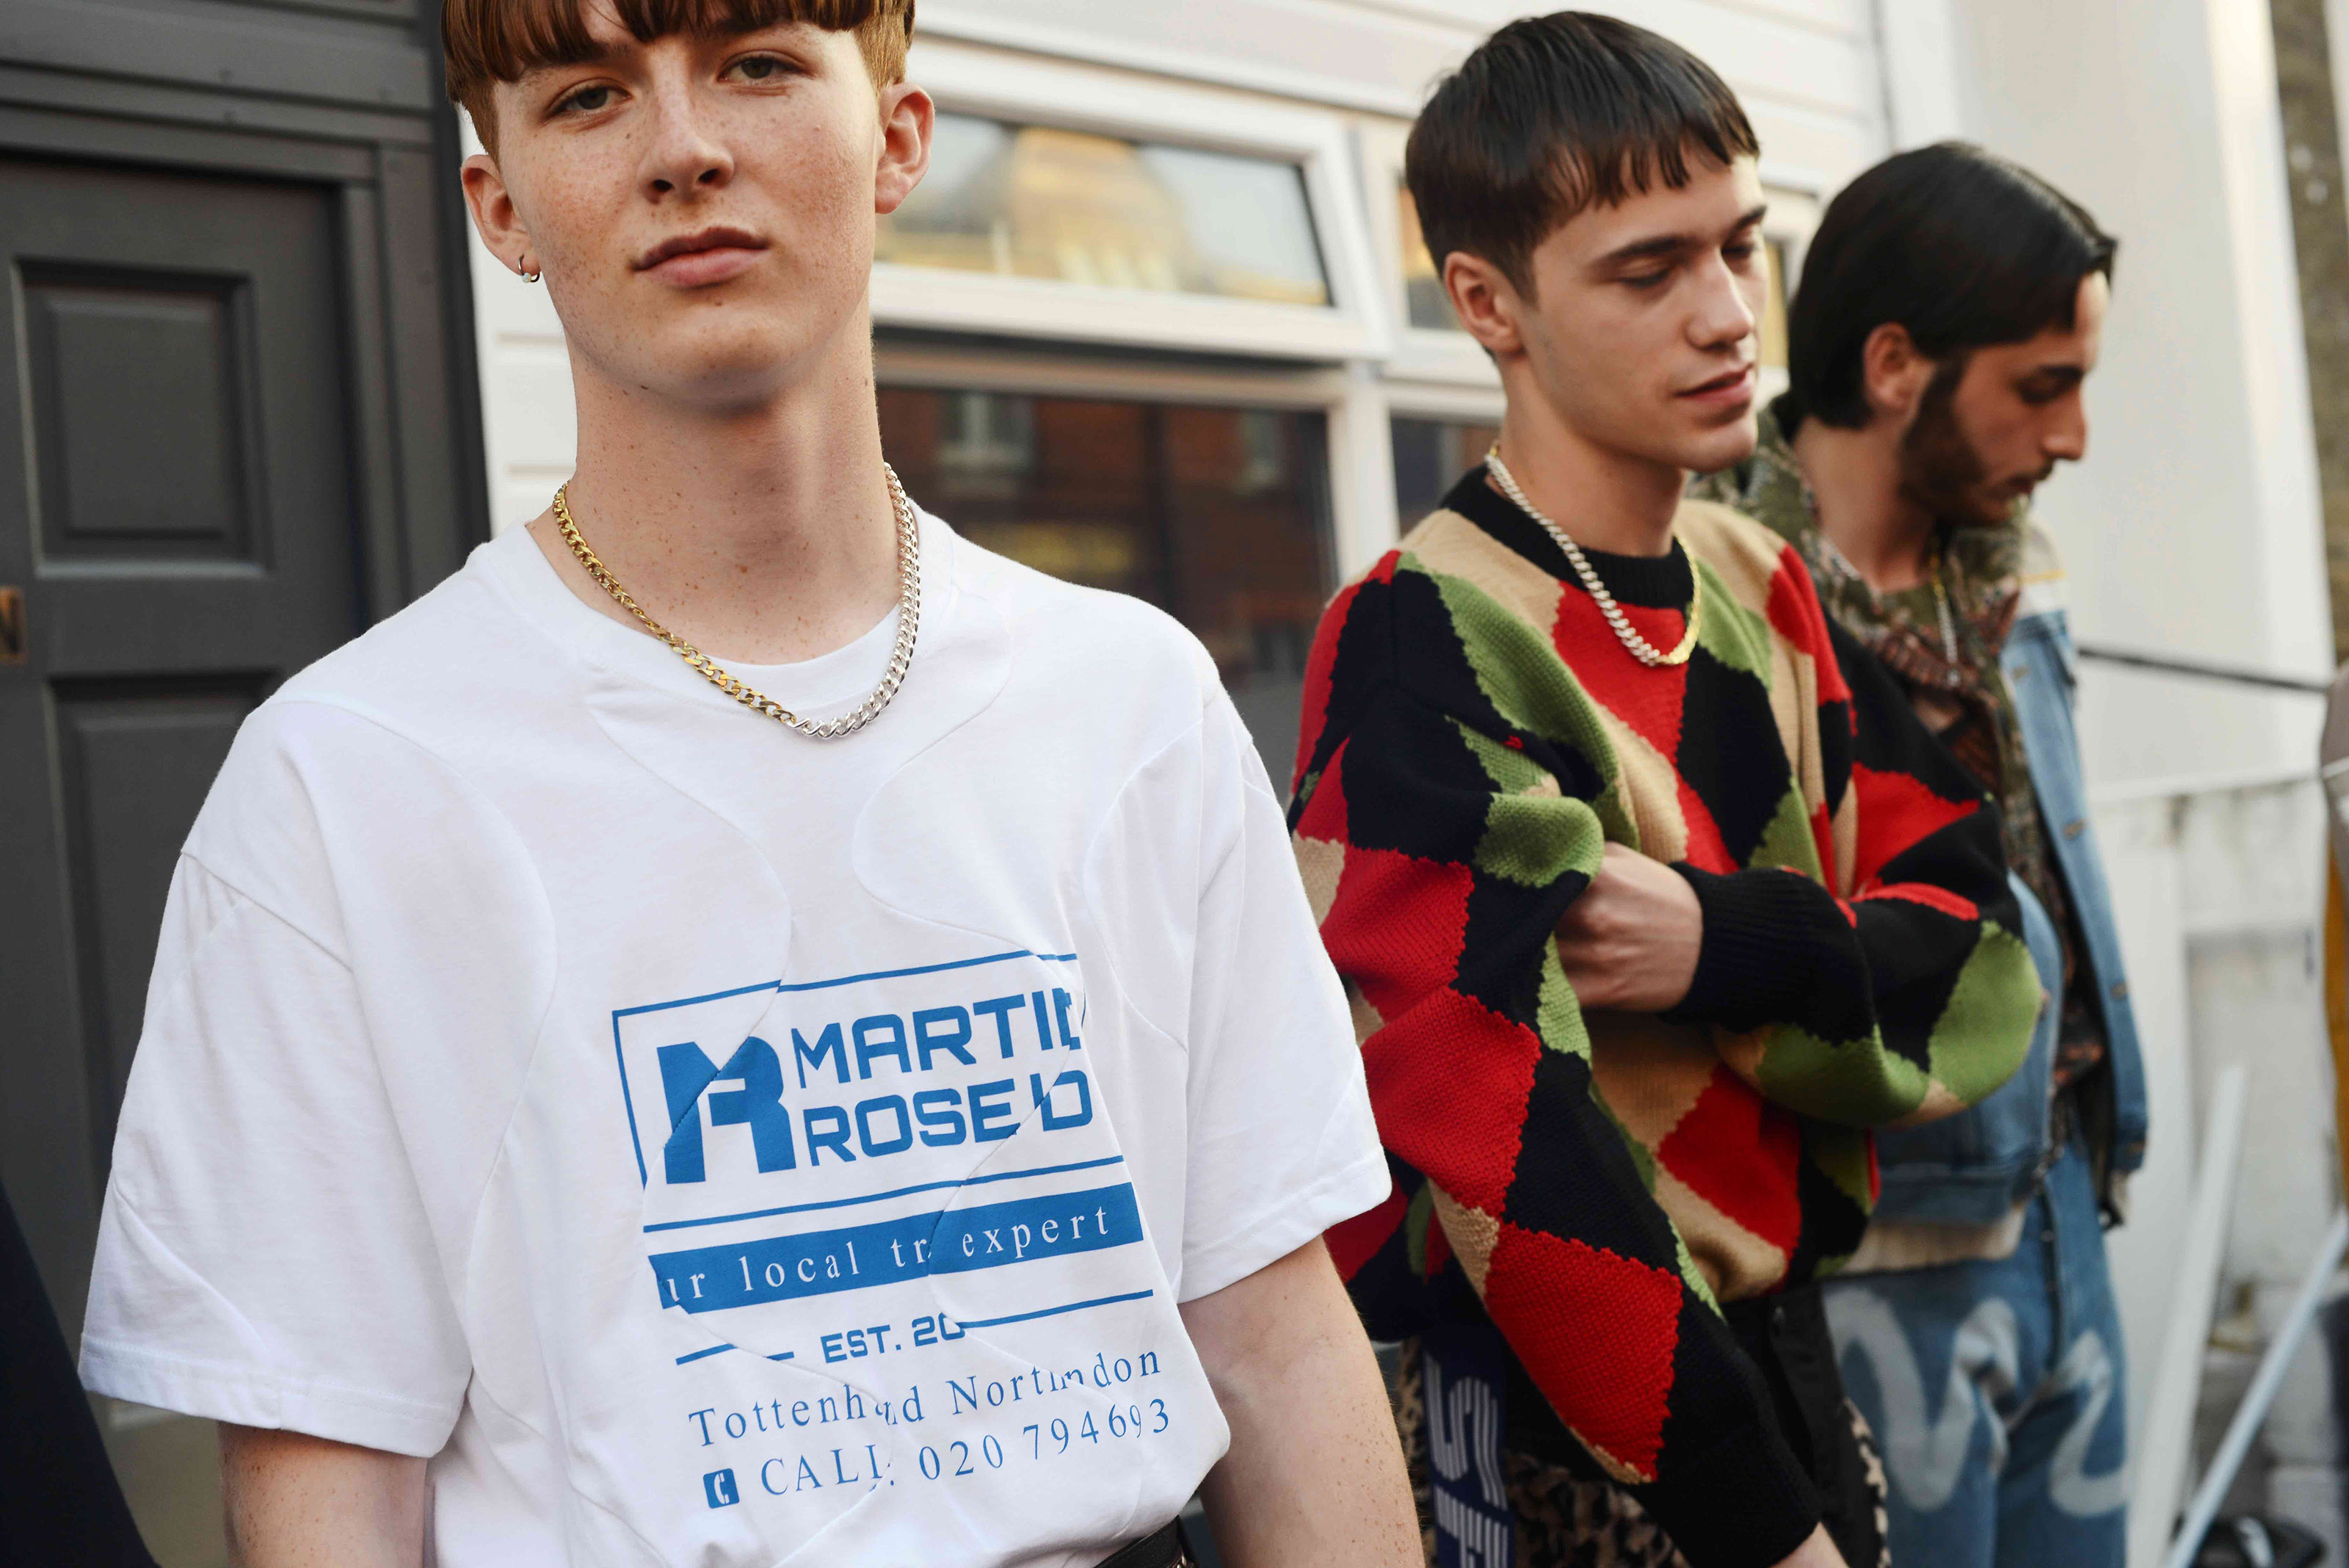 Martine Rose Balenciaga Napapijri London Fashion Week Mens Interview Behind The Scenes Backstage Spring/Summer 2019 2018 Fall/Winter Collection Closer Look Details In Depth